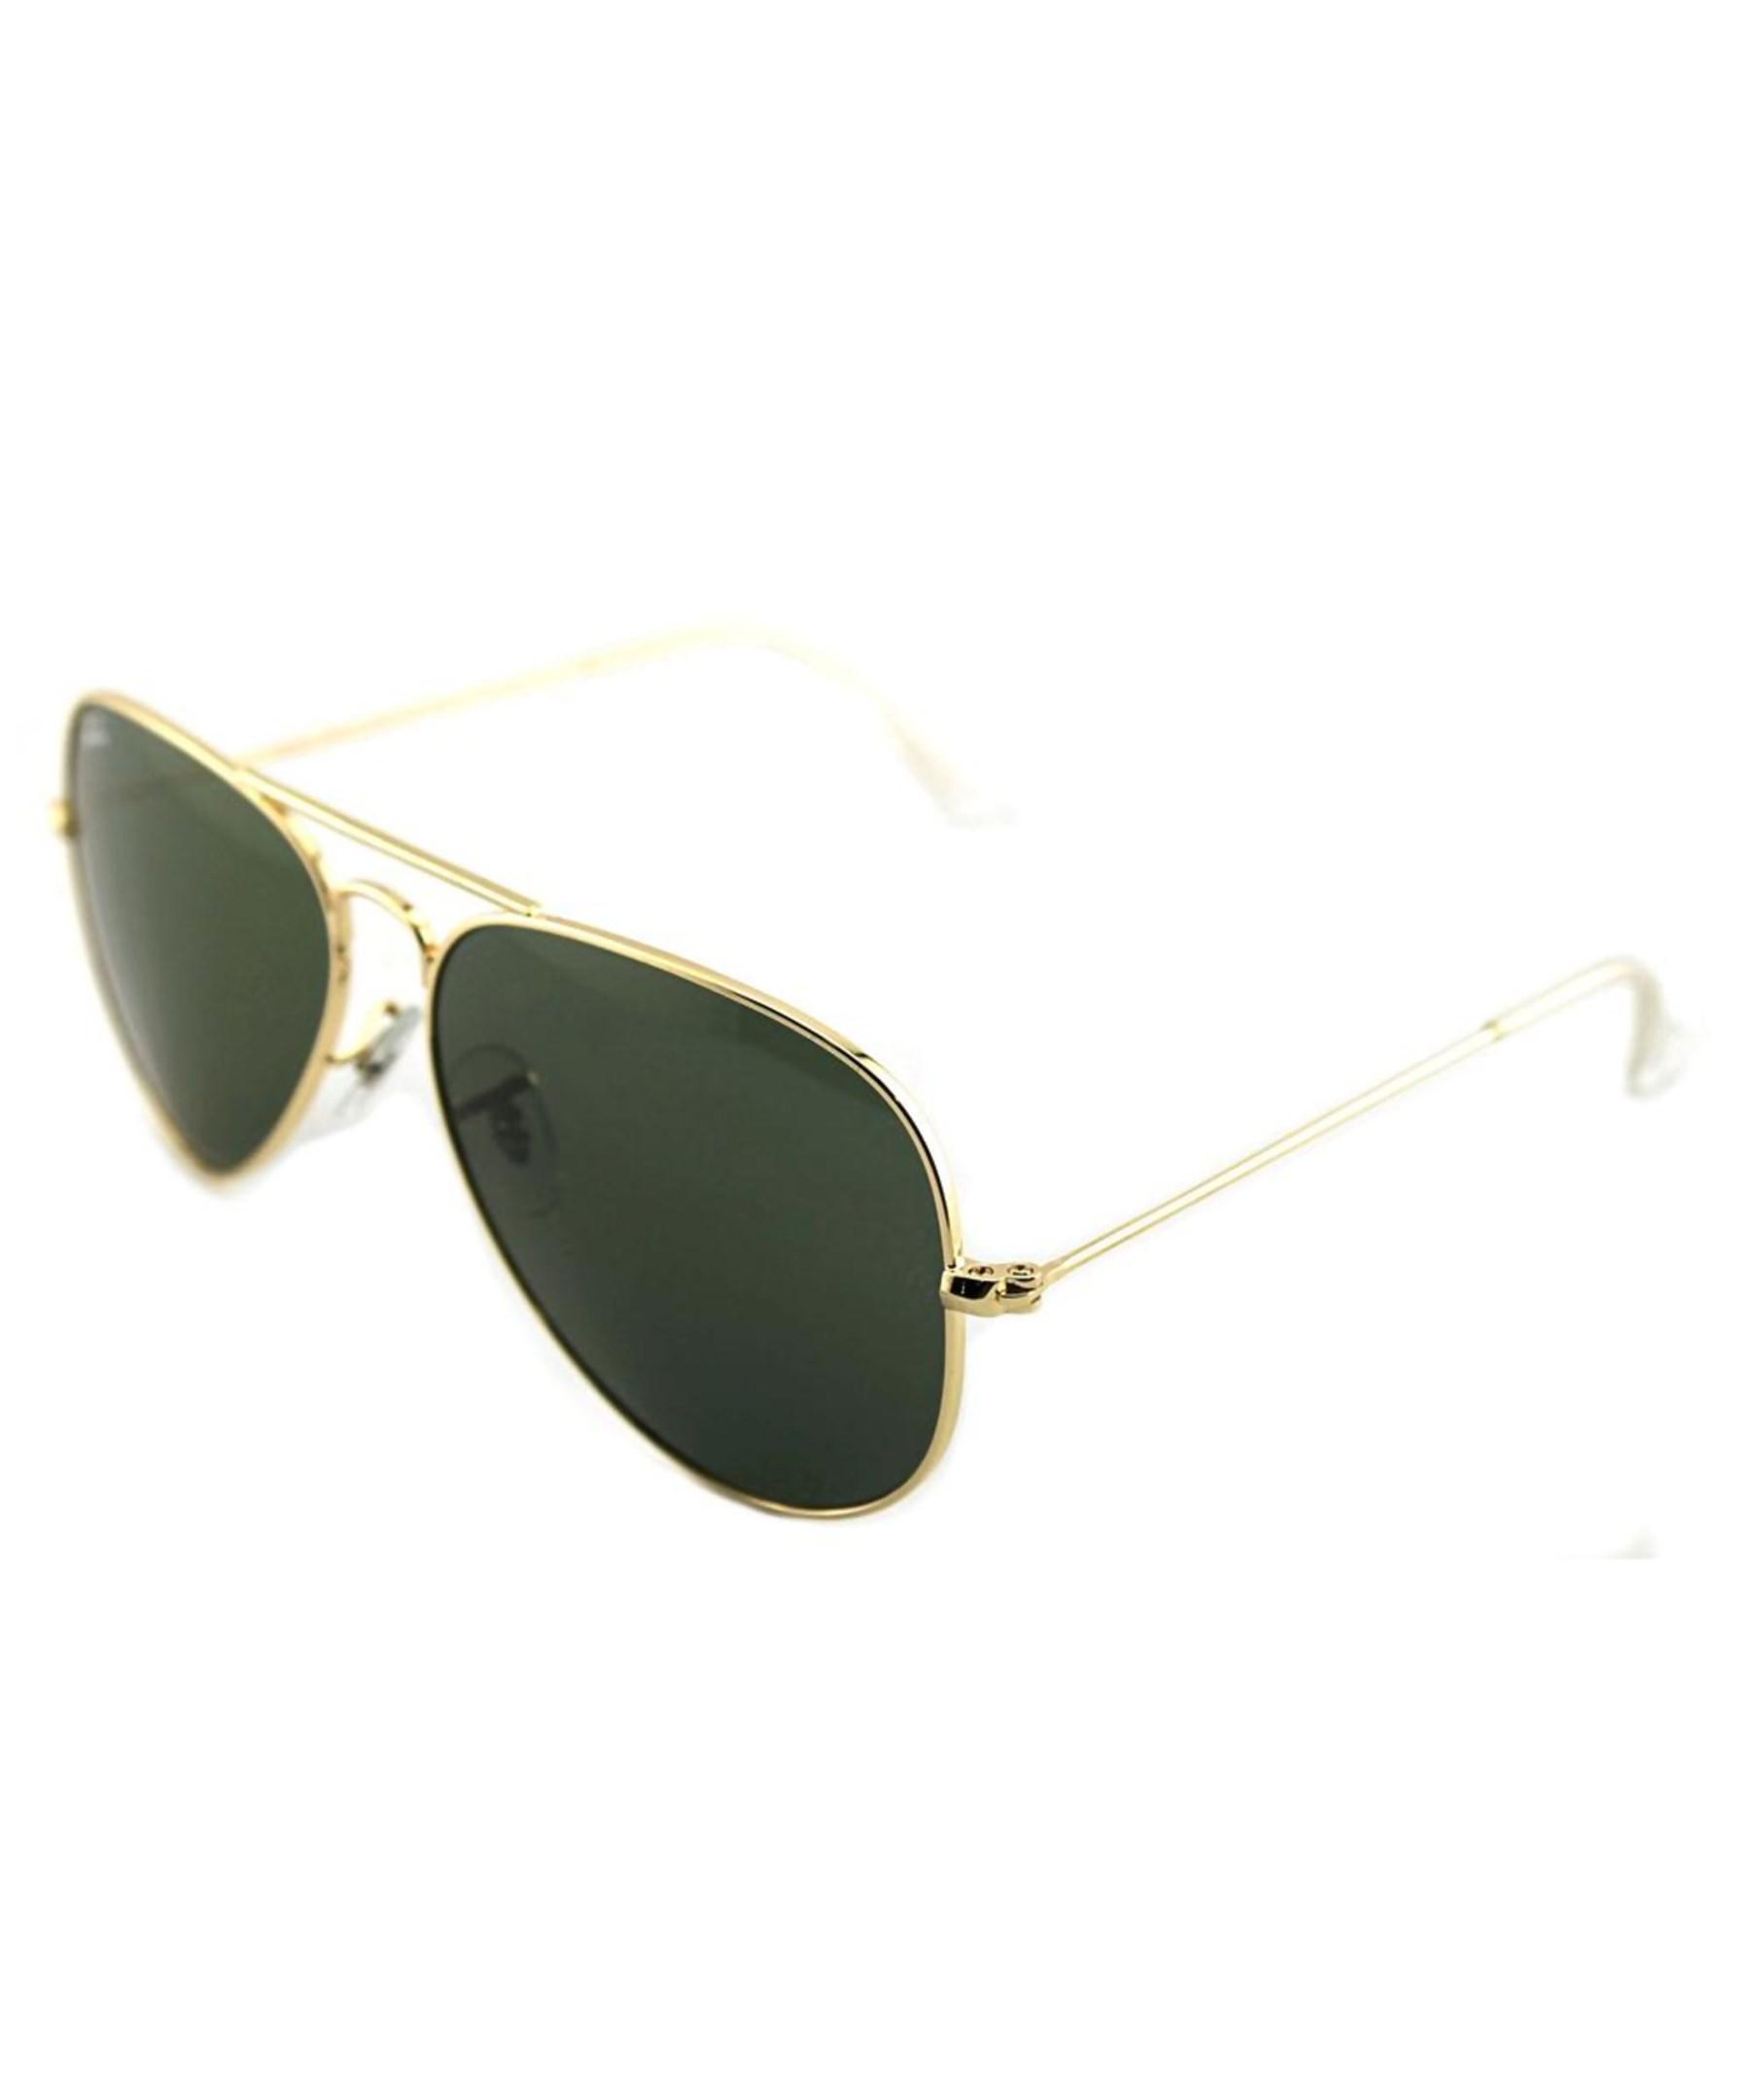 dc9690b9c2 Ray Ban Women S Aviator 55mm Sunglasses Size « Heritage Malta